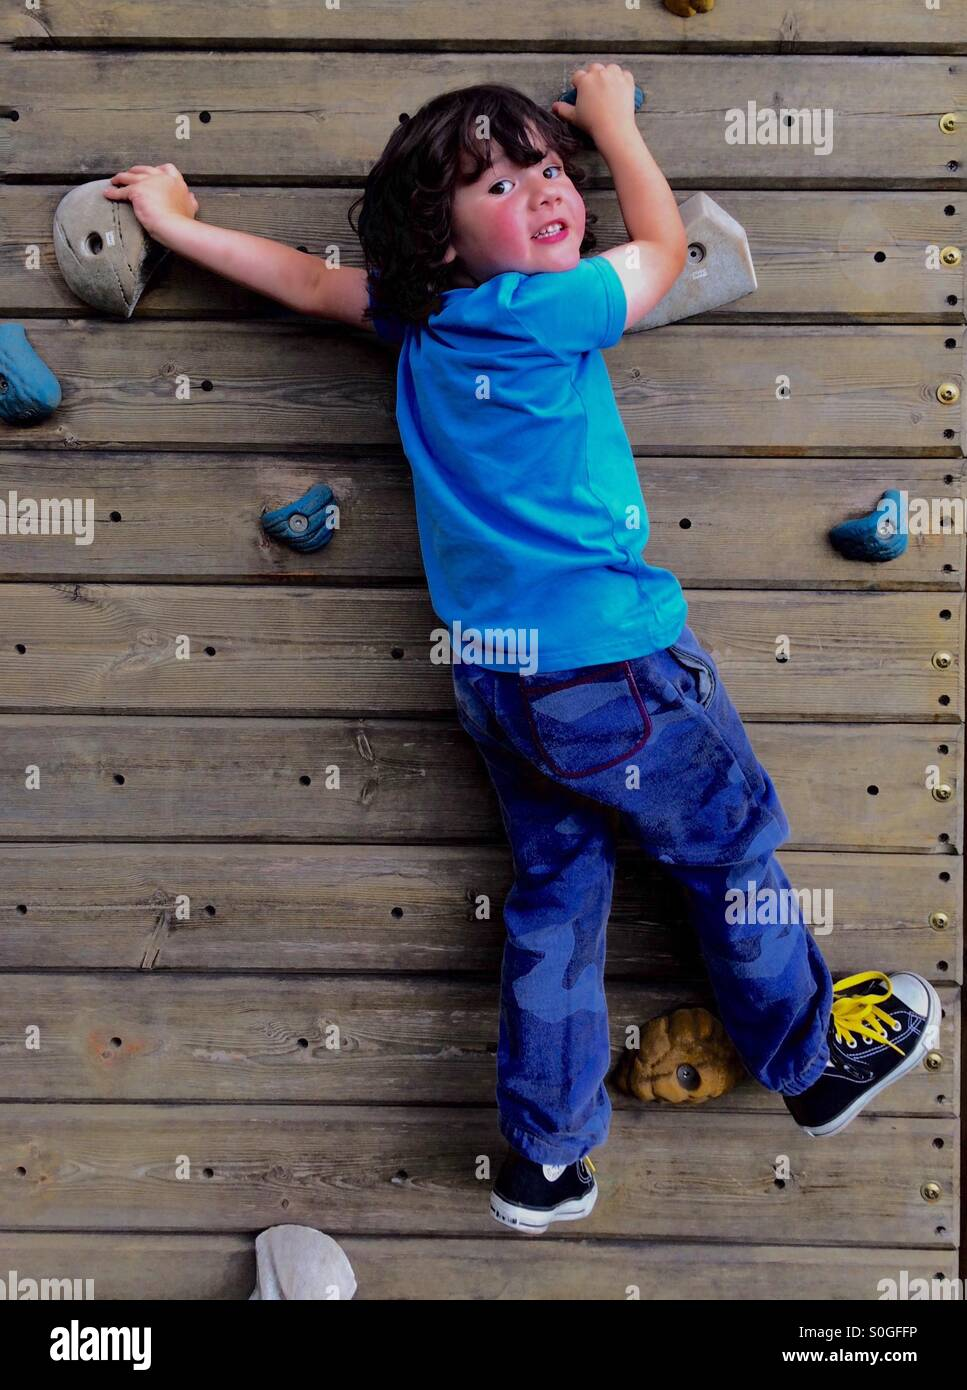 Young boy 4 years old on climbing wall - Stock Image